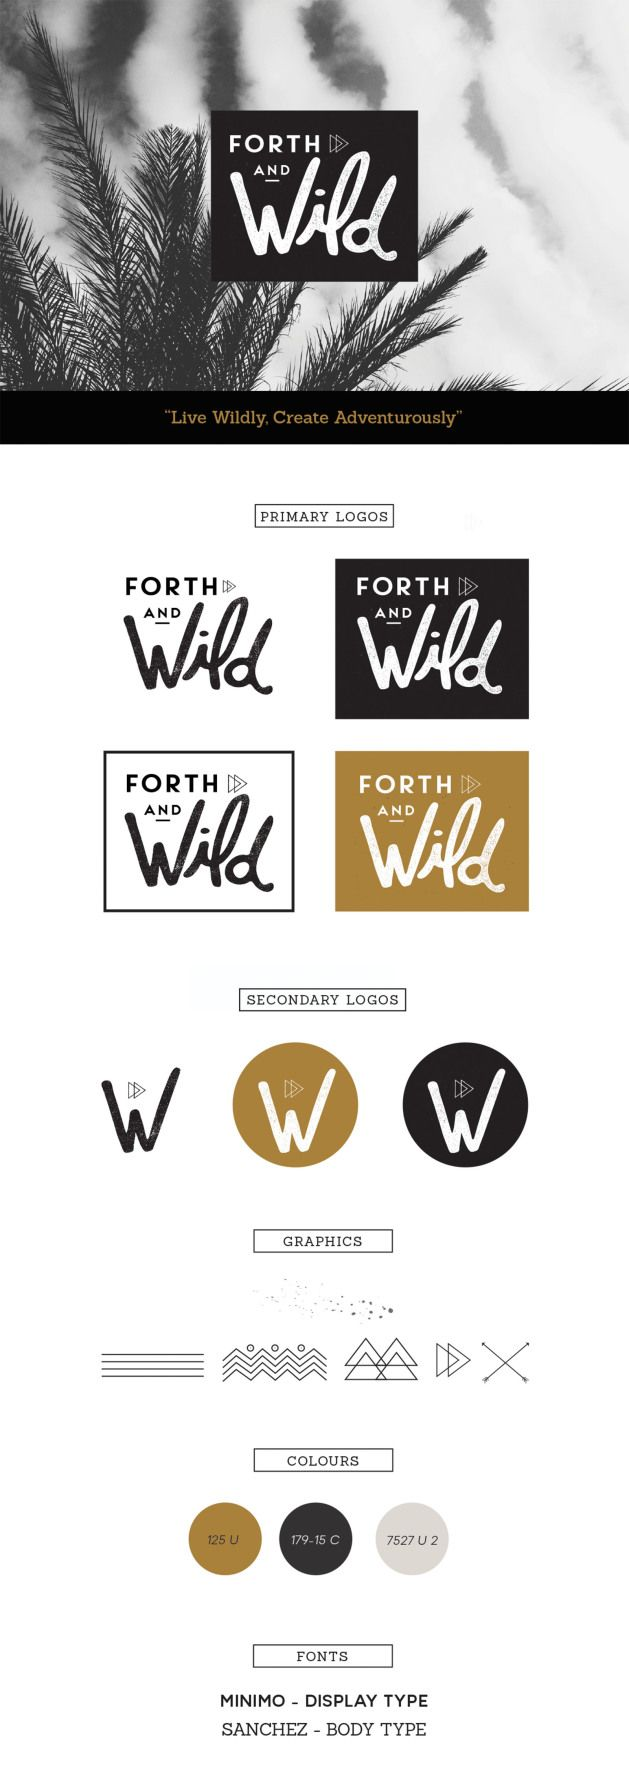 Forth and Wild Branding